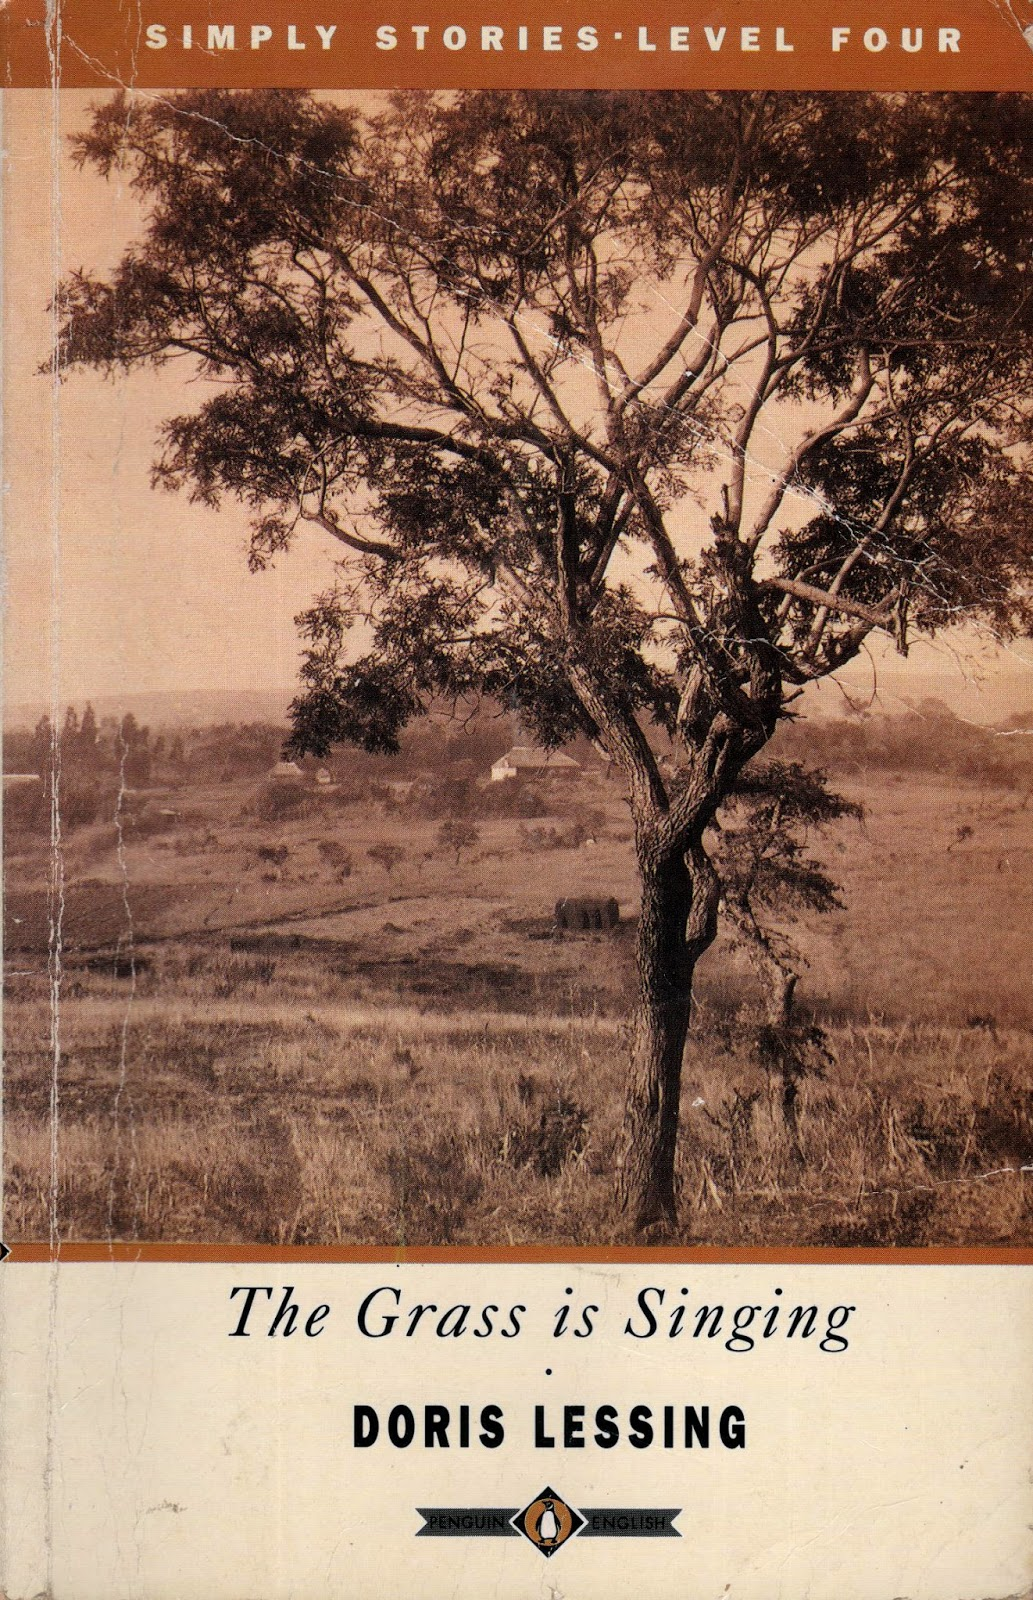 essays on the grass is singing The grass is singing by doris lessing plot summary this novel, written almost entirely in the form of an extended flashback, details the mental, spiritual, financial and marital disintegrations of the lives of dick and mary turner, white farmers struggling to make a living off a sun-baked farm in south africa.